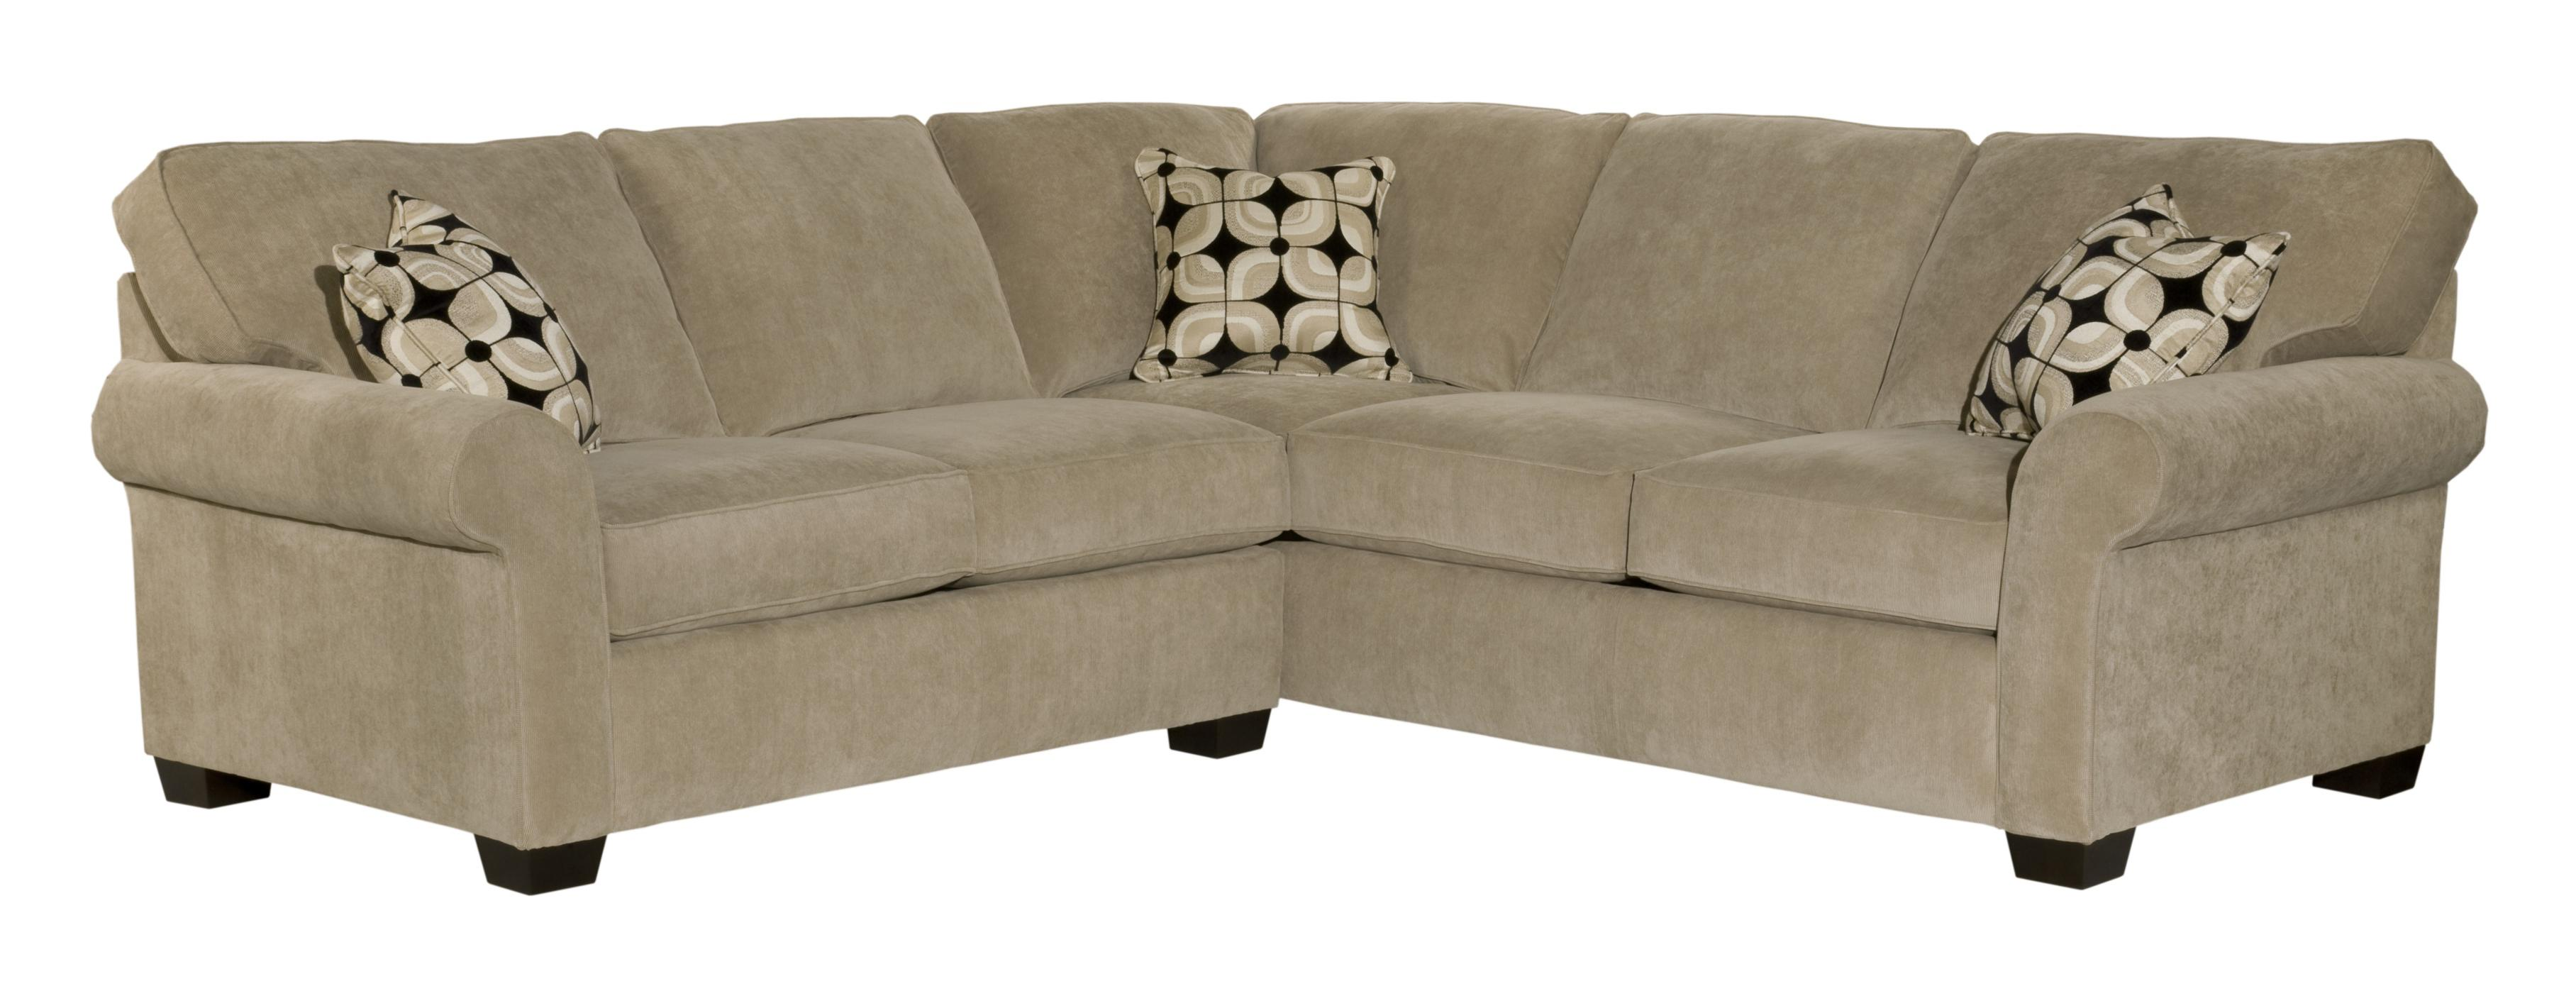 Broyhill Furniture Ethan Two Piece Sectional - Item Number: 6627-1+6627-4